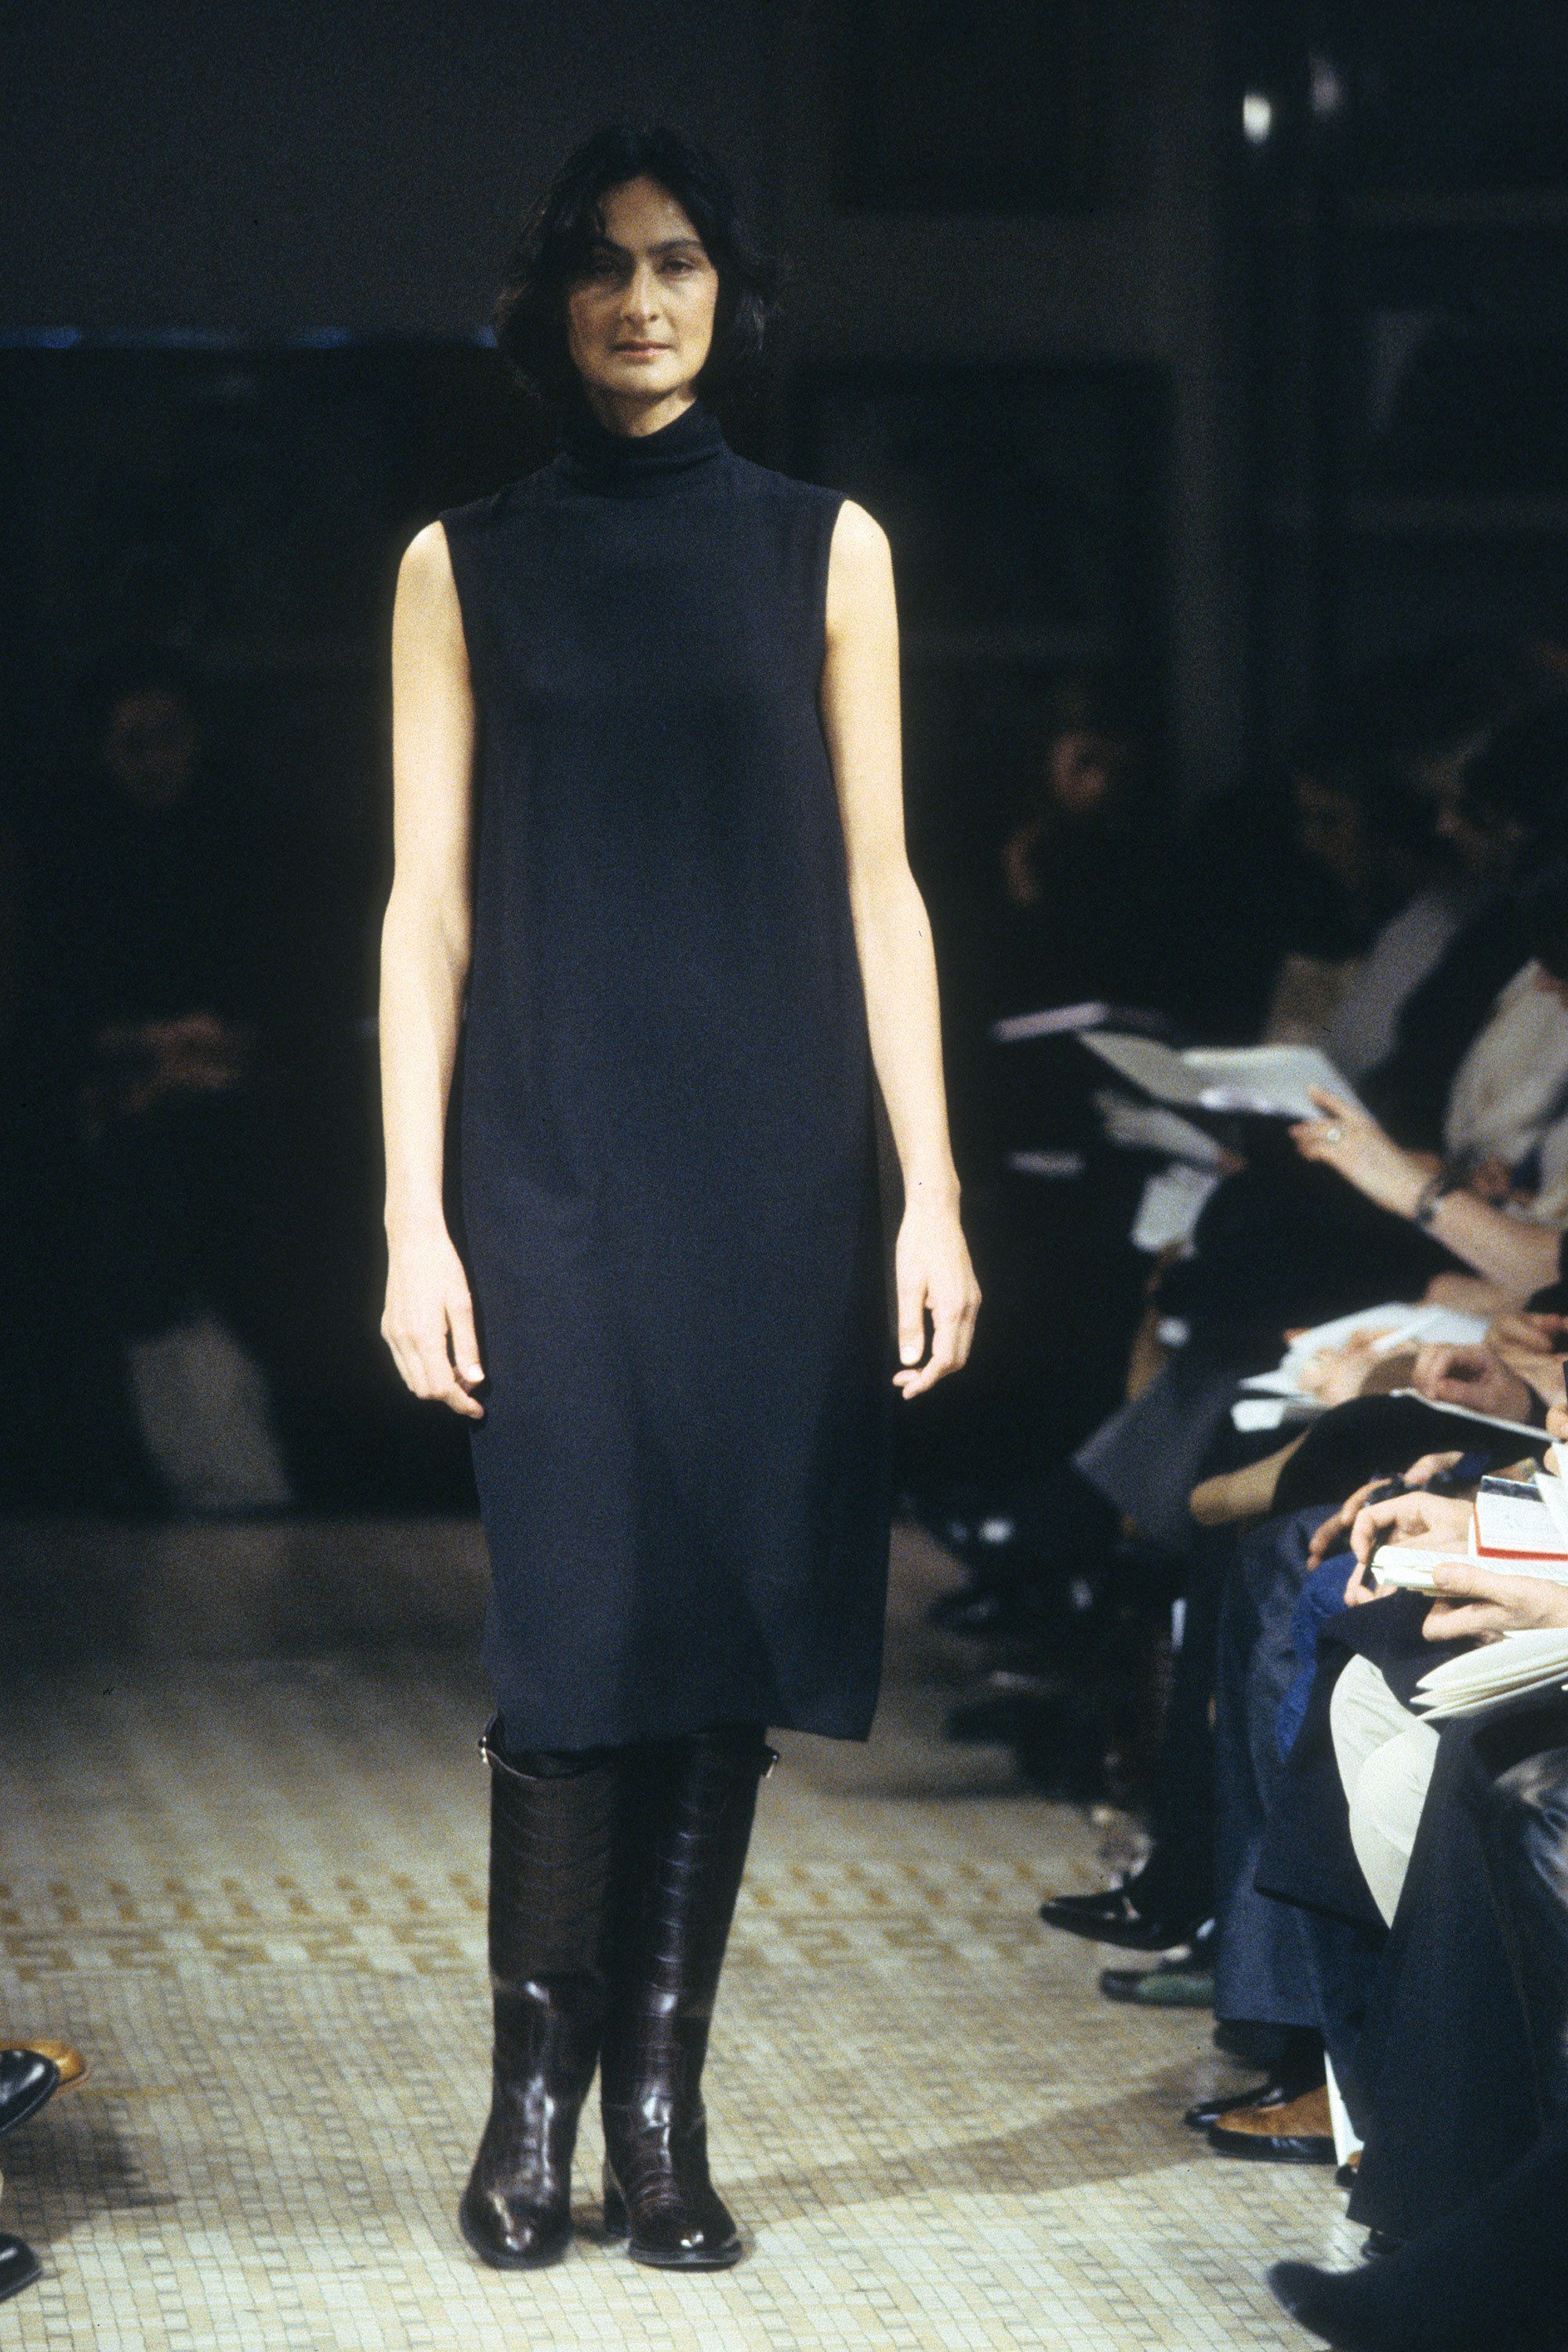 HERMES by Martin Margiela 2000 AW